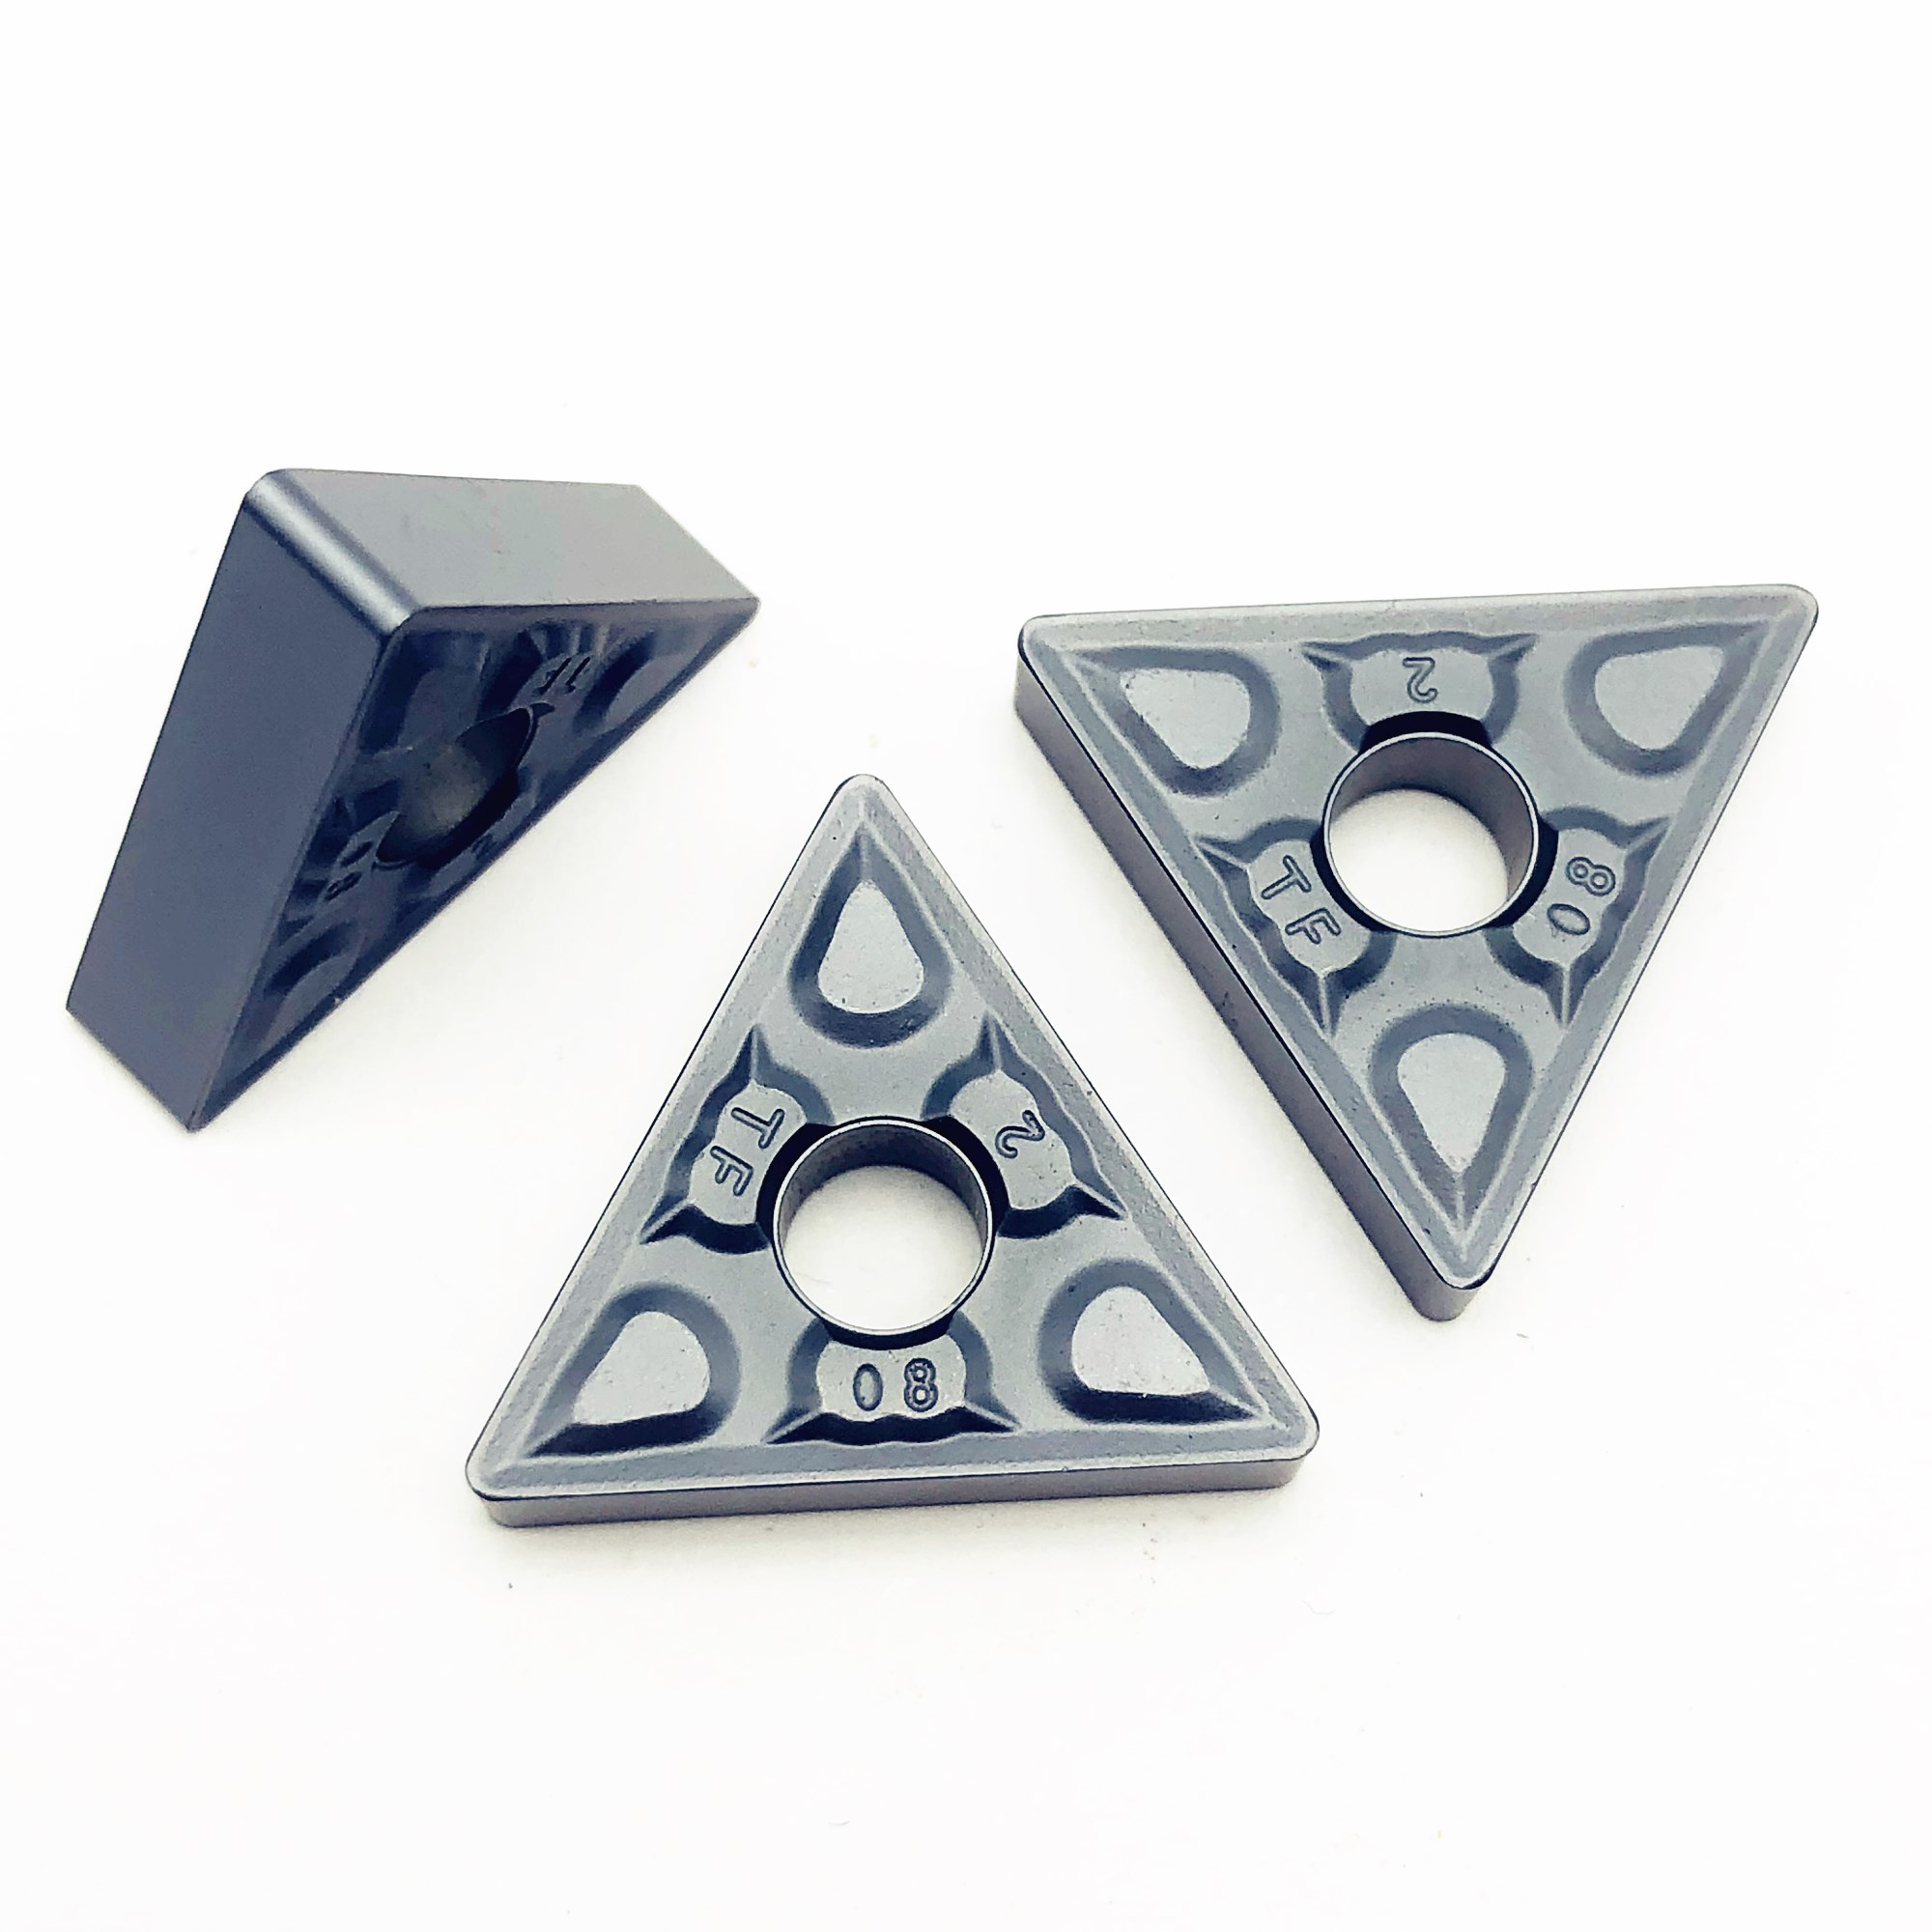 50* CNMG120408-MA VP15TF CNMG432 MA NEW arrival carbide inserts high quality